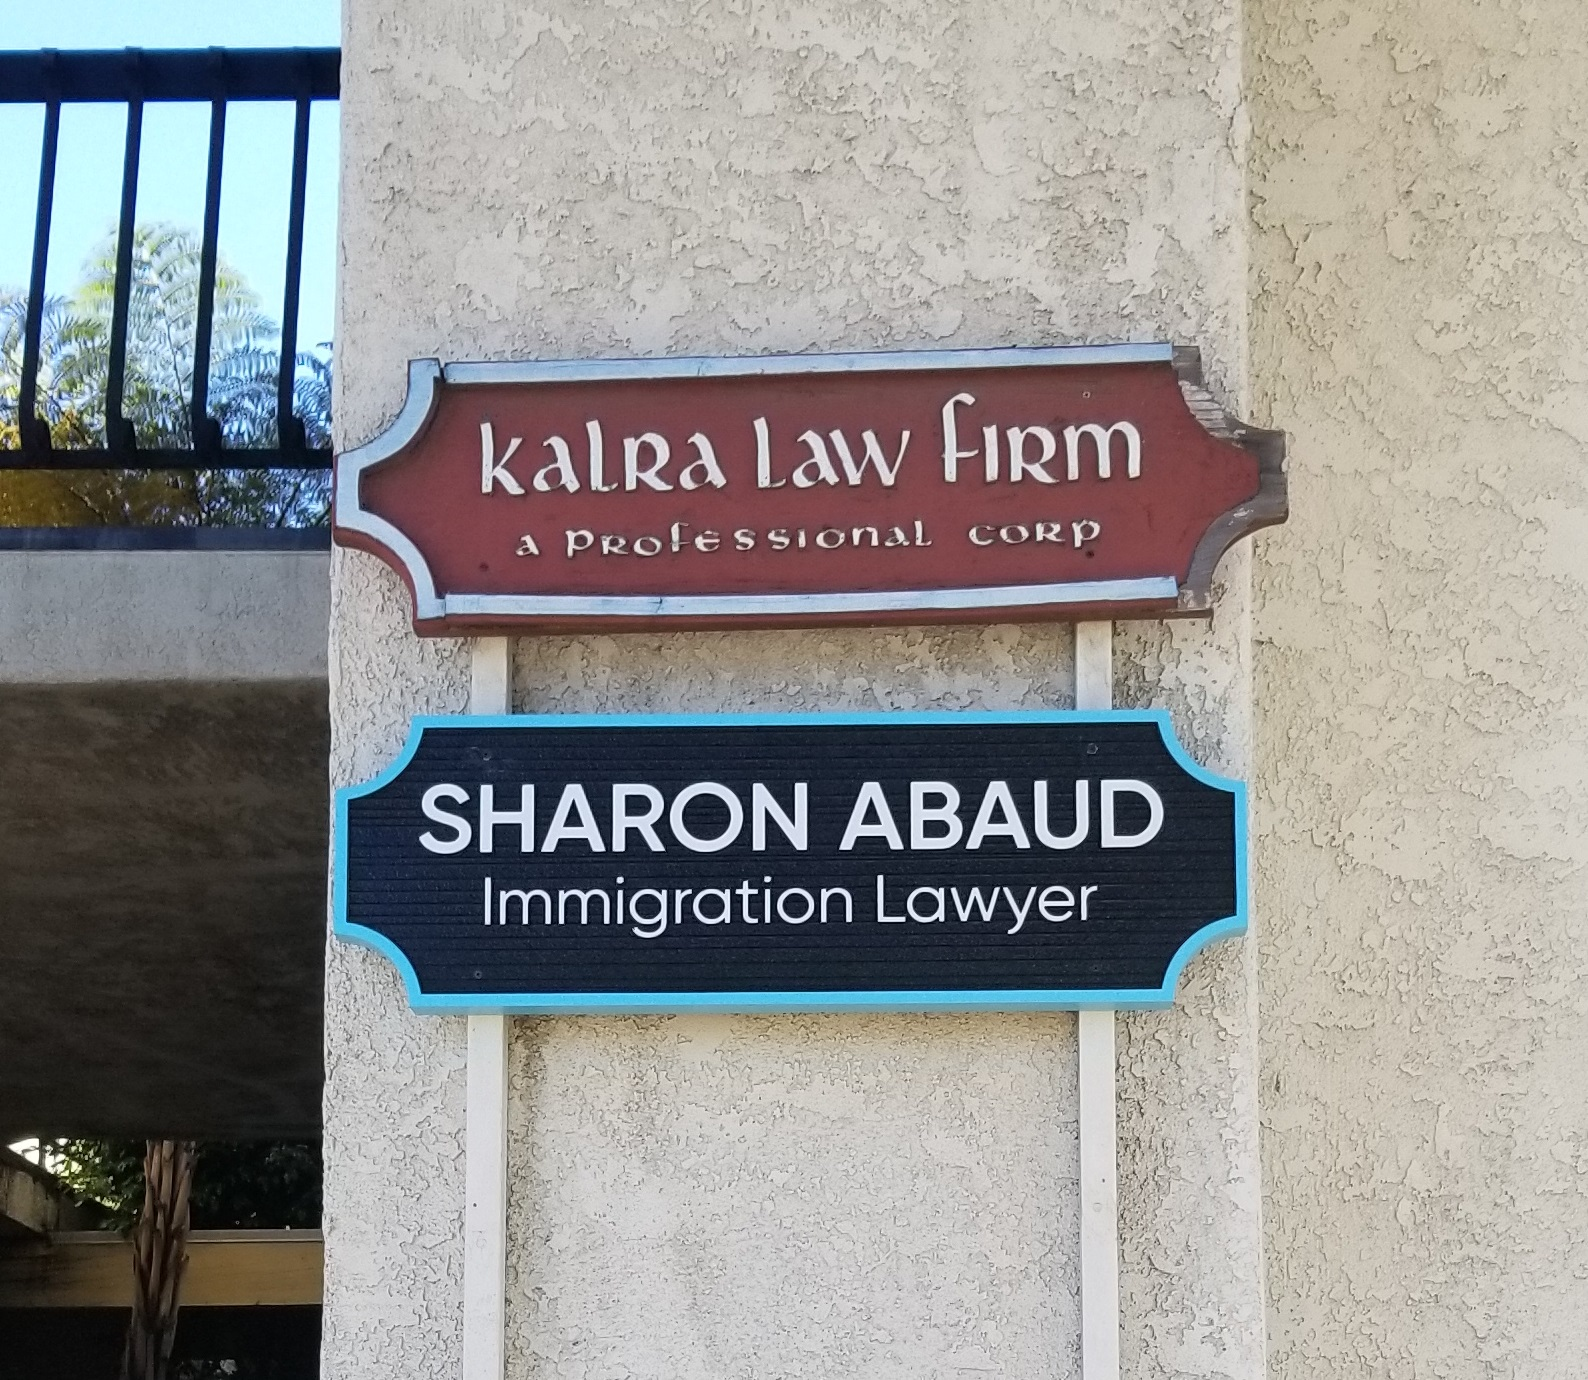 This custom wood sign is part of the business sign package for Sharon Abaud's law firm in Torrance.